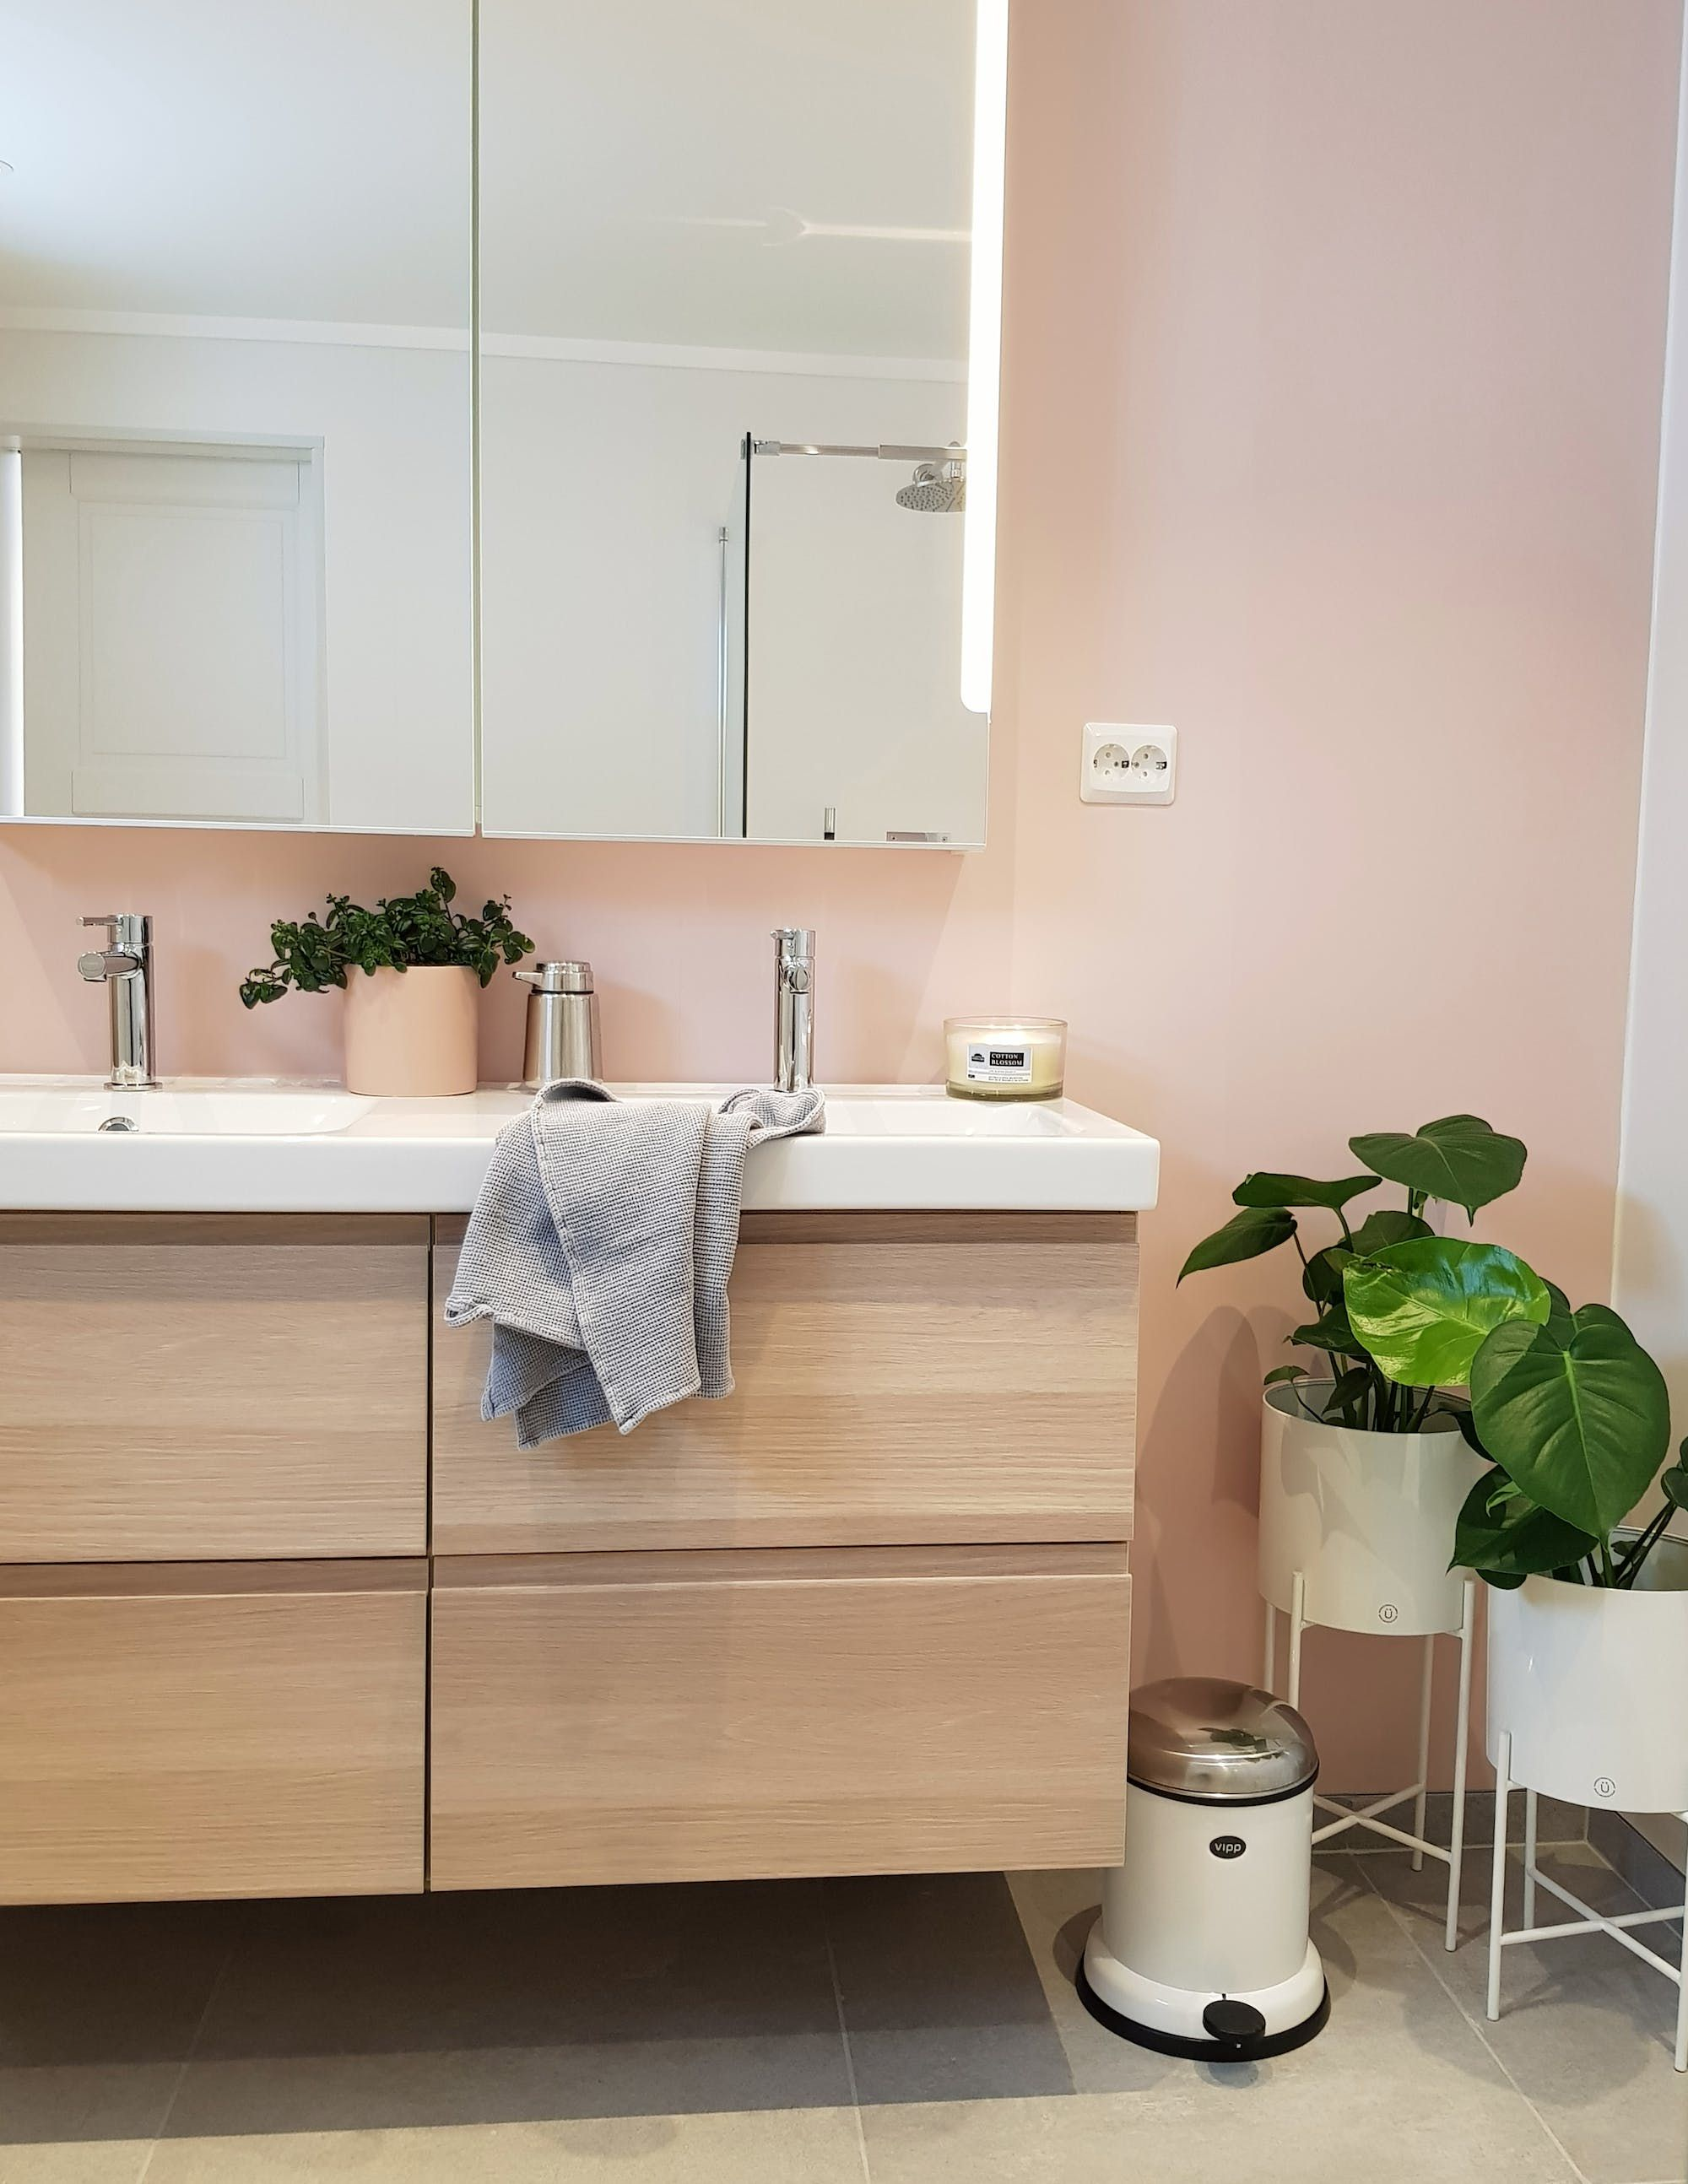 Scandinavian warm and cool tones bathroom inspiration also combining in this nordic home rh pinterest